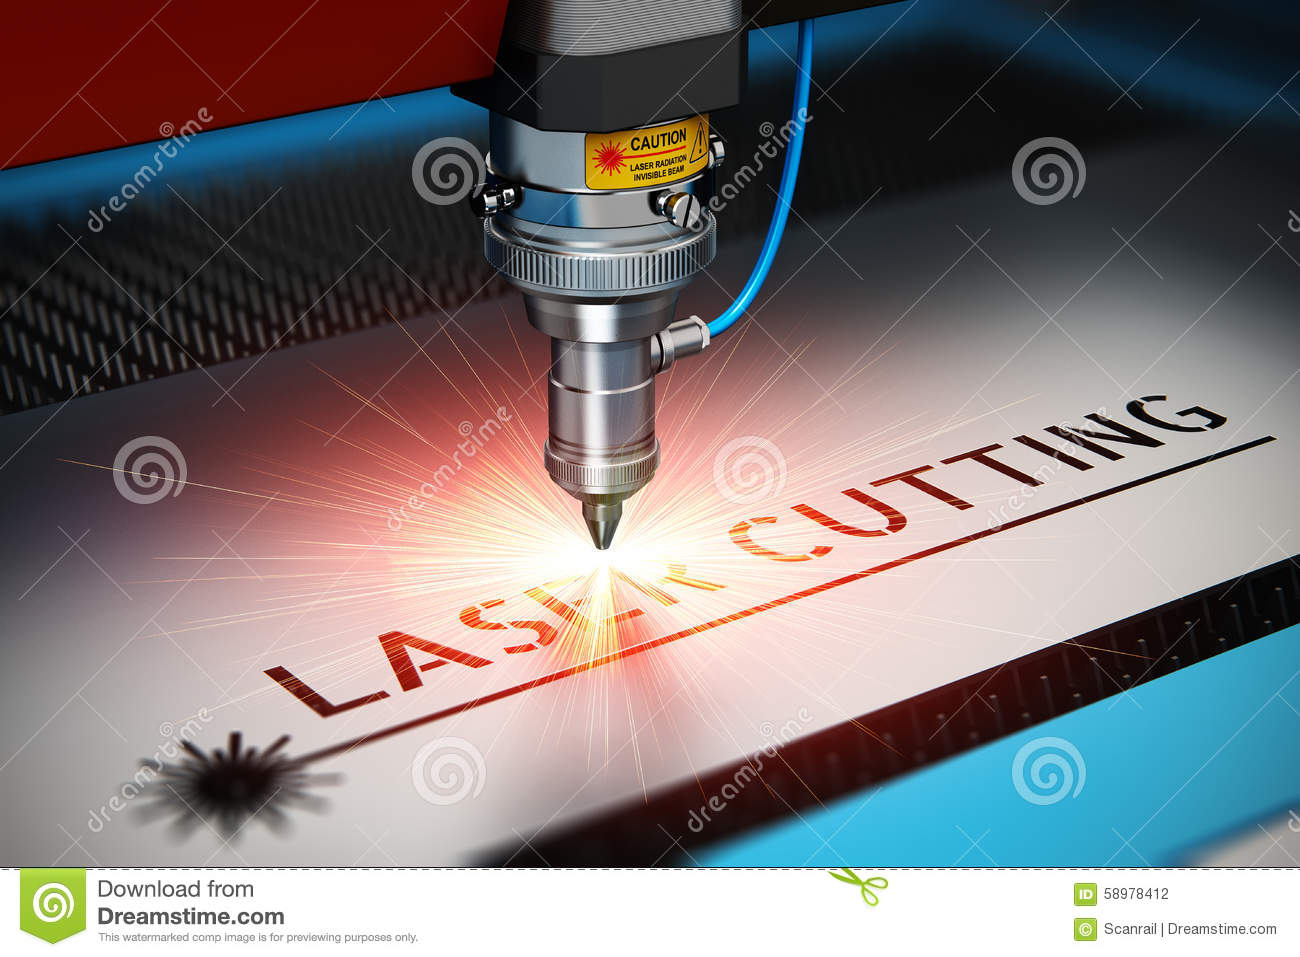 Laser cutting metal industry concept: macro view of industrial digital ...